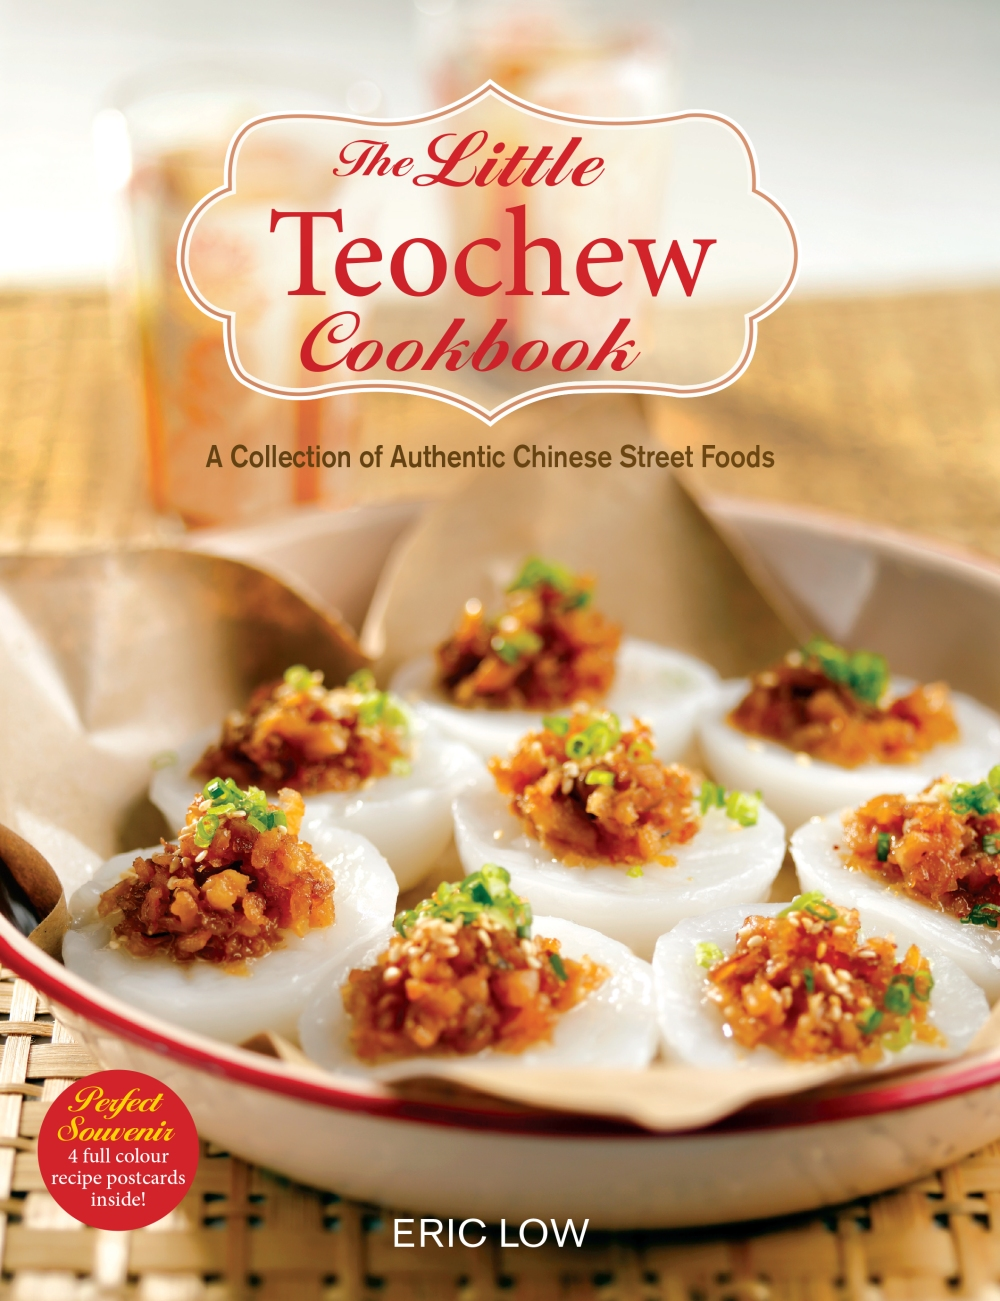 the little teochew cookbook cover 26 may final.indd